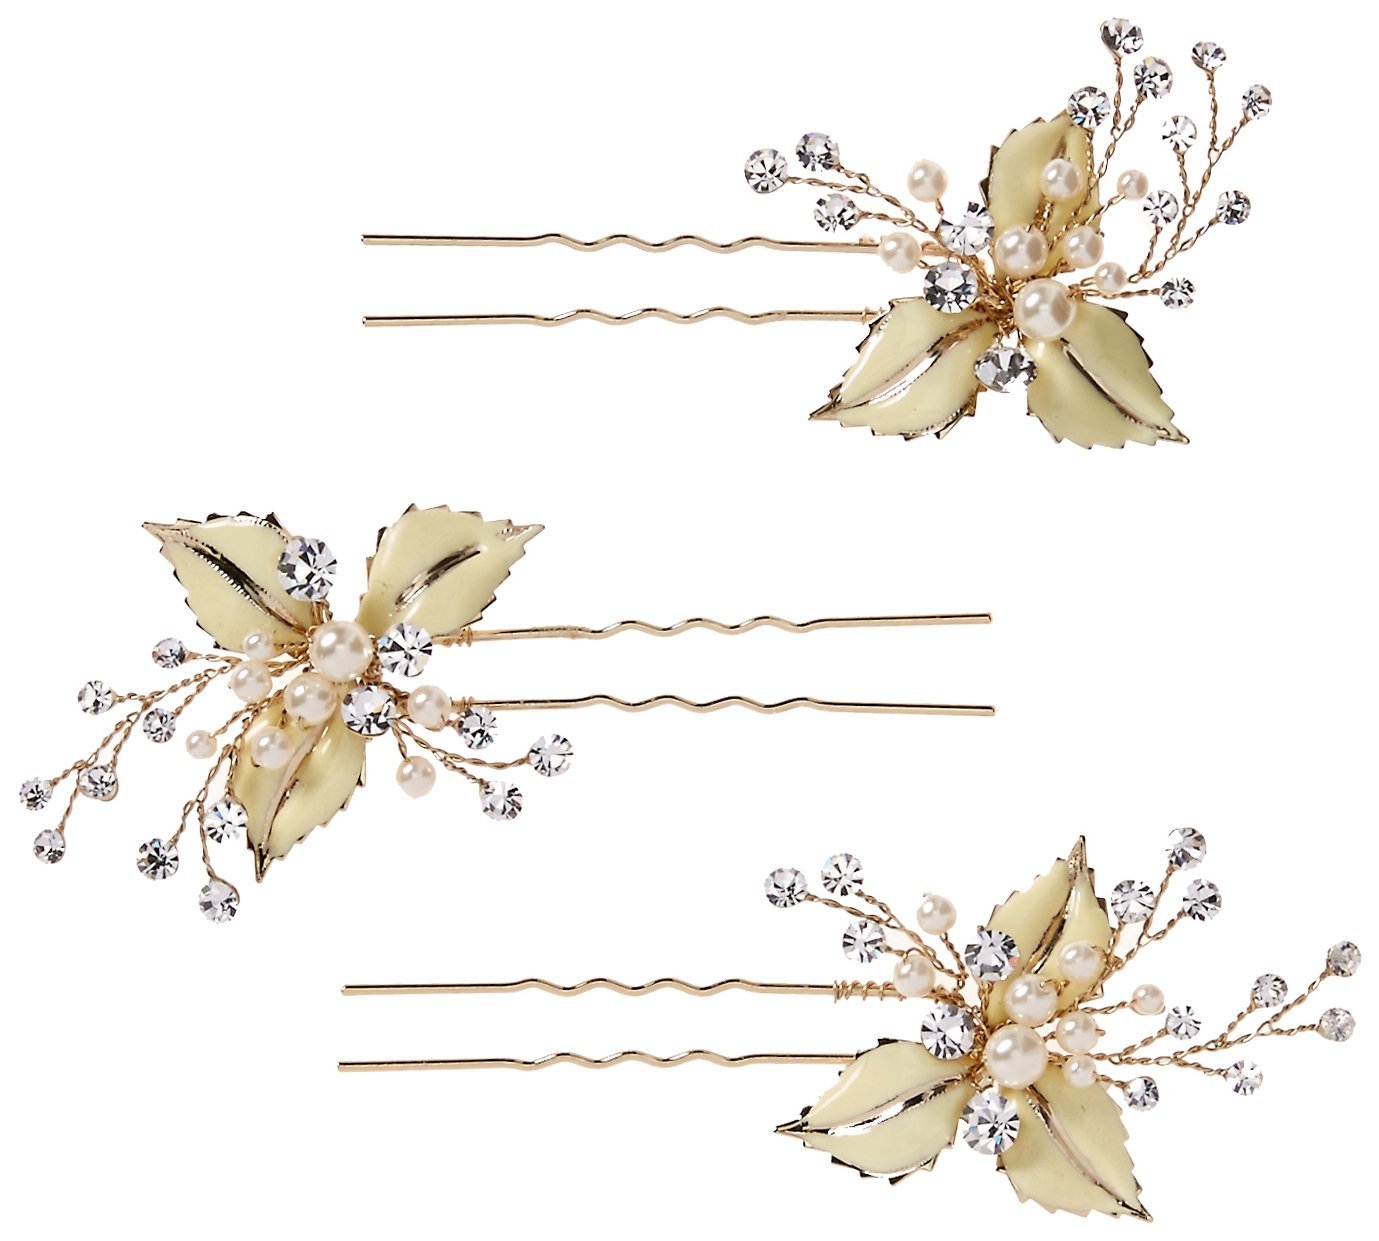 Twigs & Honey Women's Set Of 3 Petite Enamel Leaf Bobby Pins, Gold, One Size by Twigs & Honey